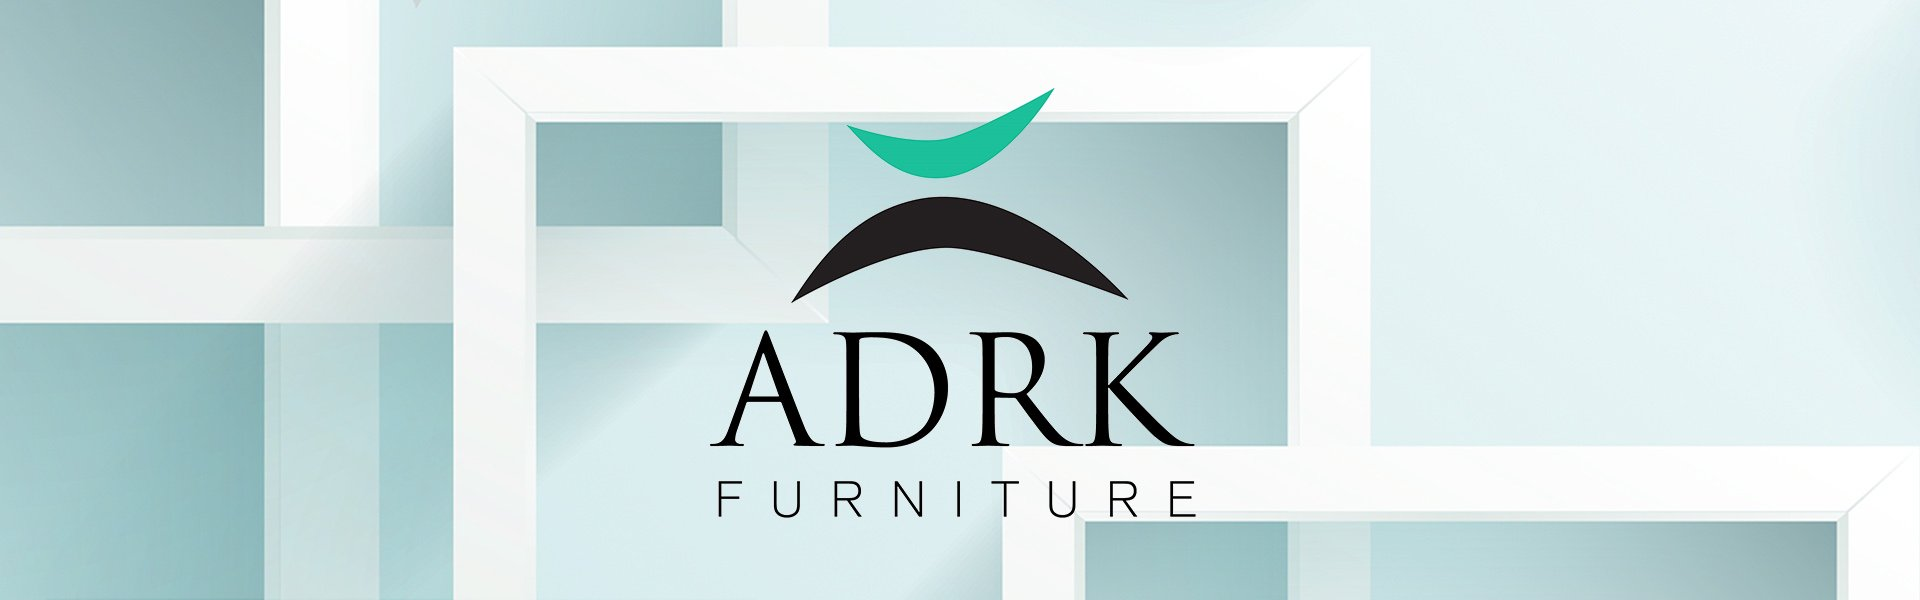 Kapp ADRK Furniture Nicea, pruun                             ADRK Furniture